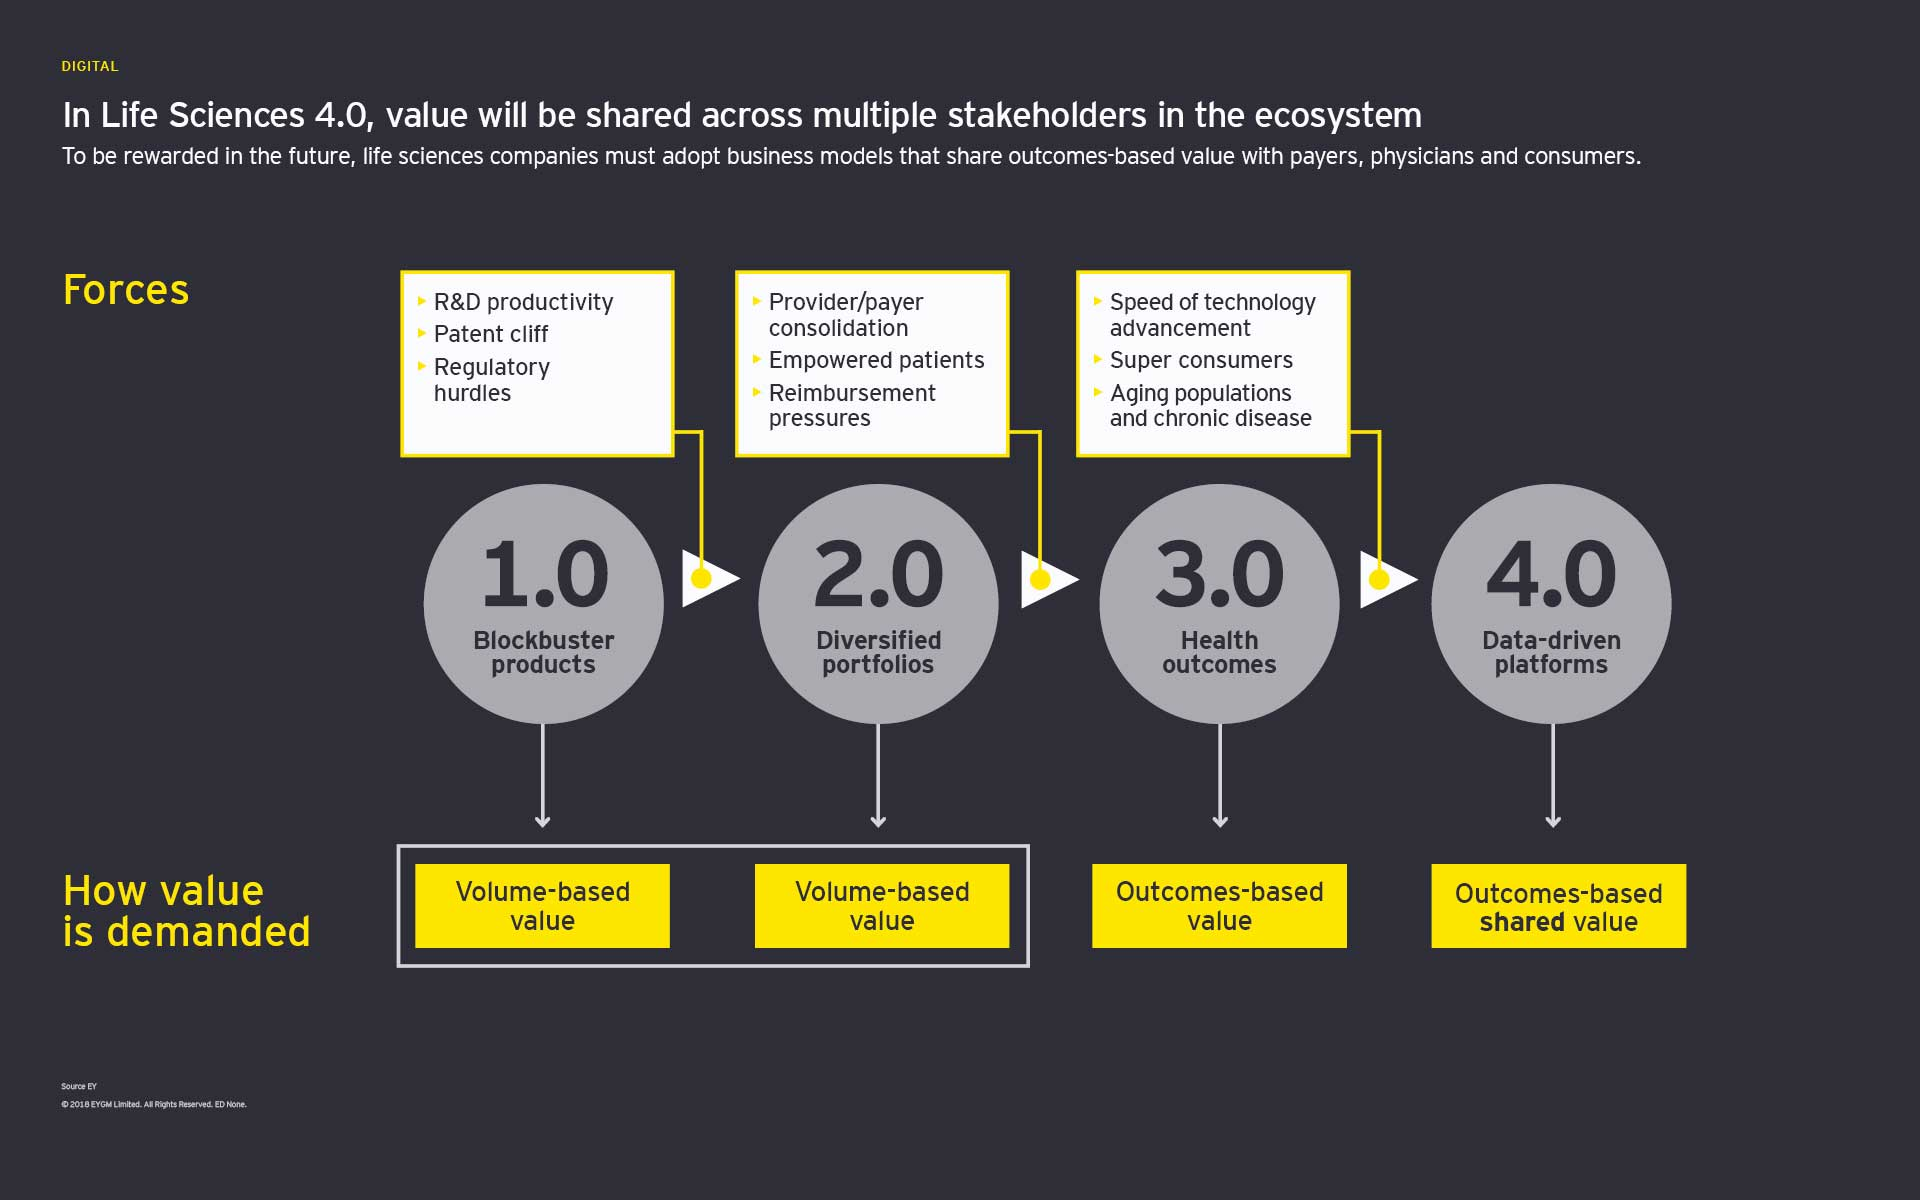 In Life Sciences 4.0, value will be shared across multiple stakeholders in the ecosystem